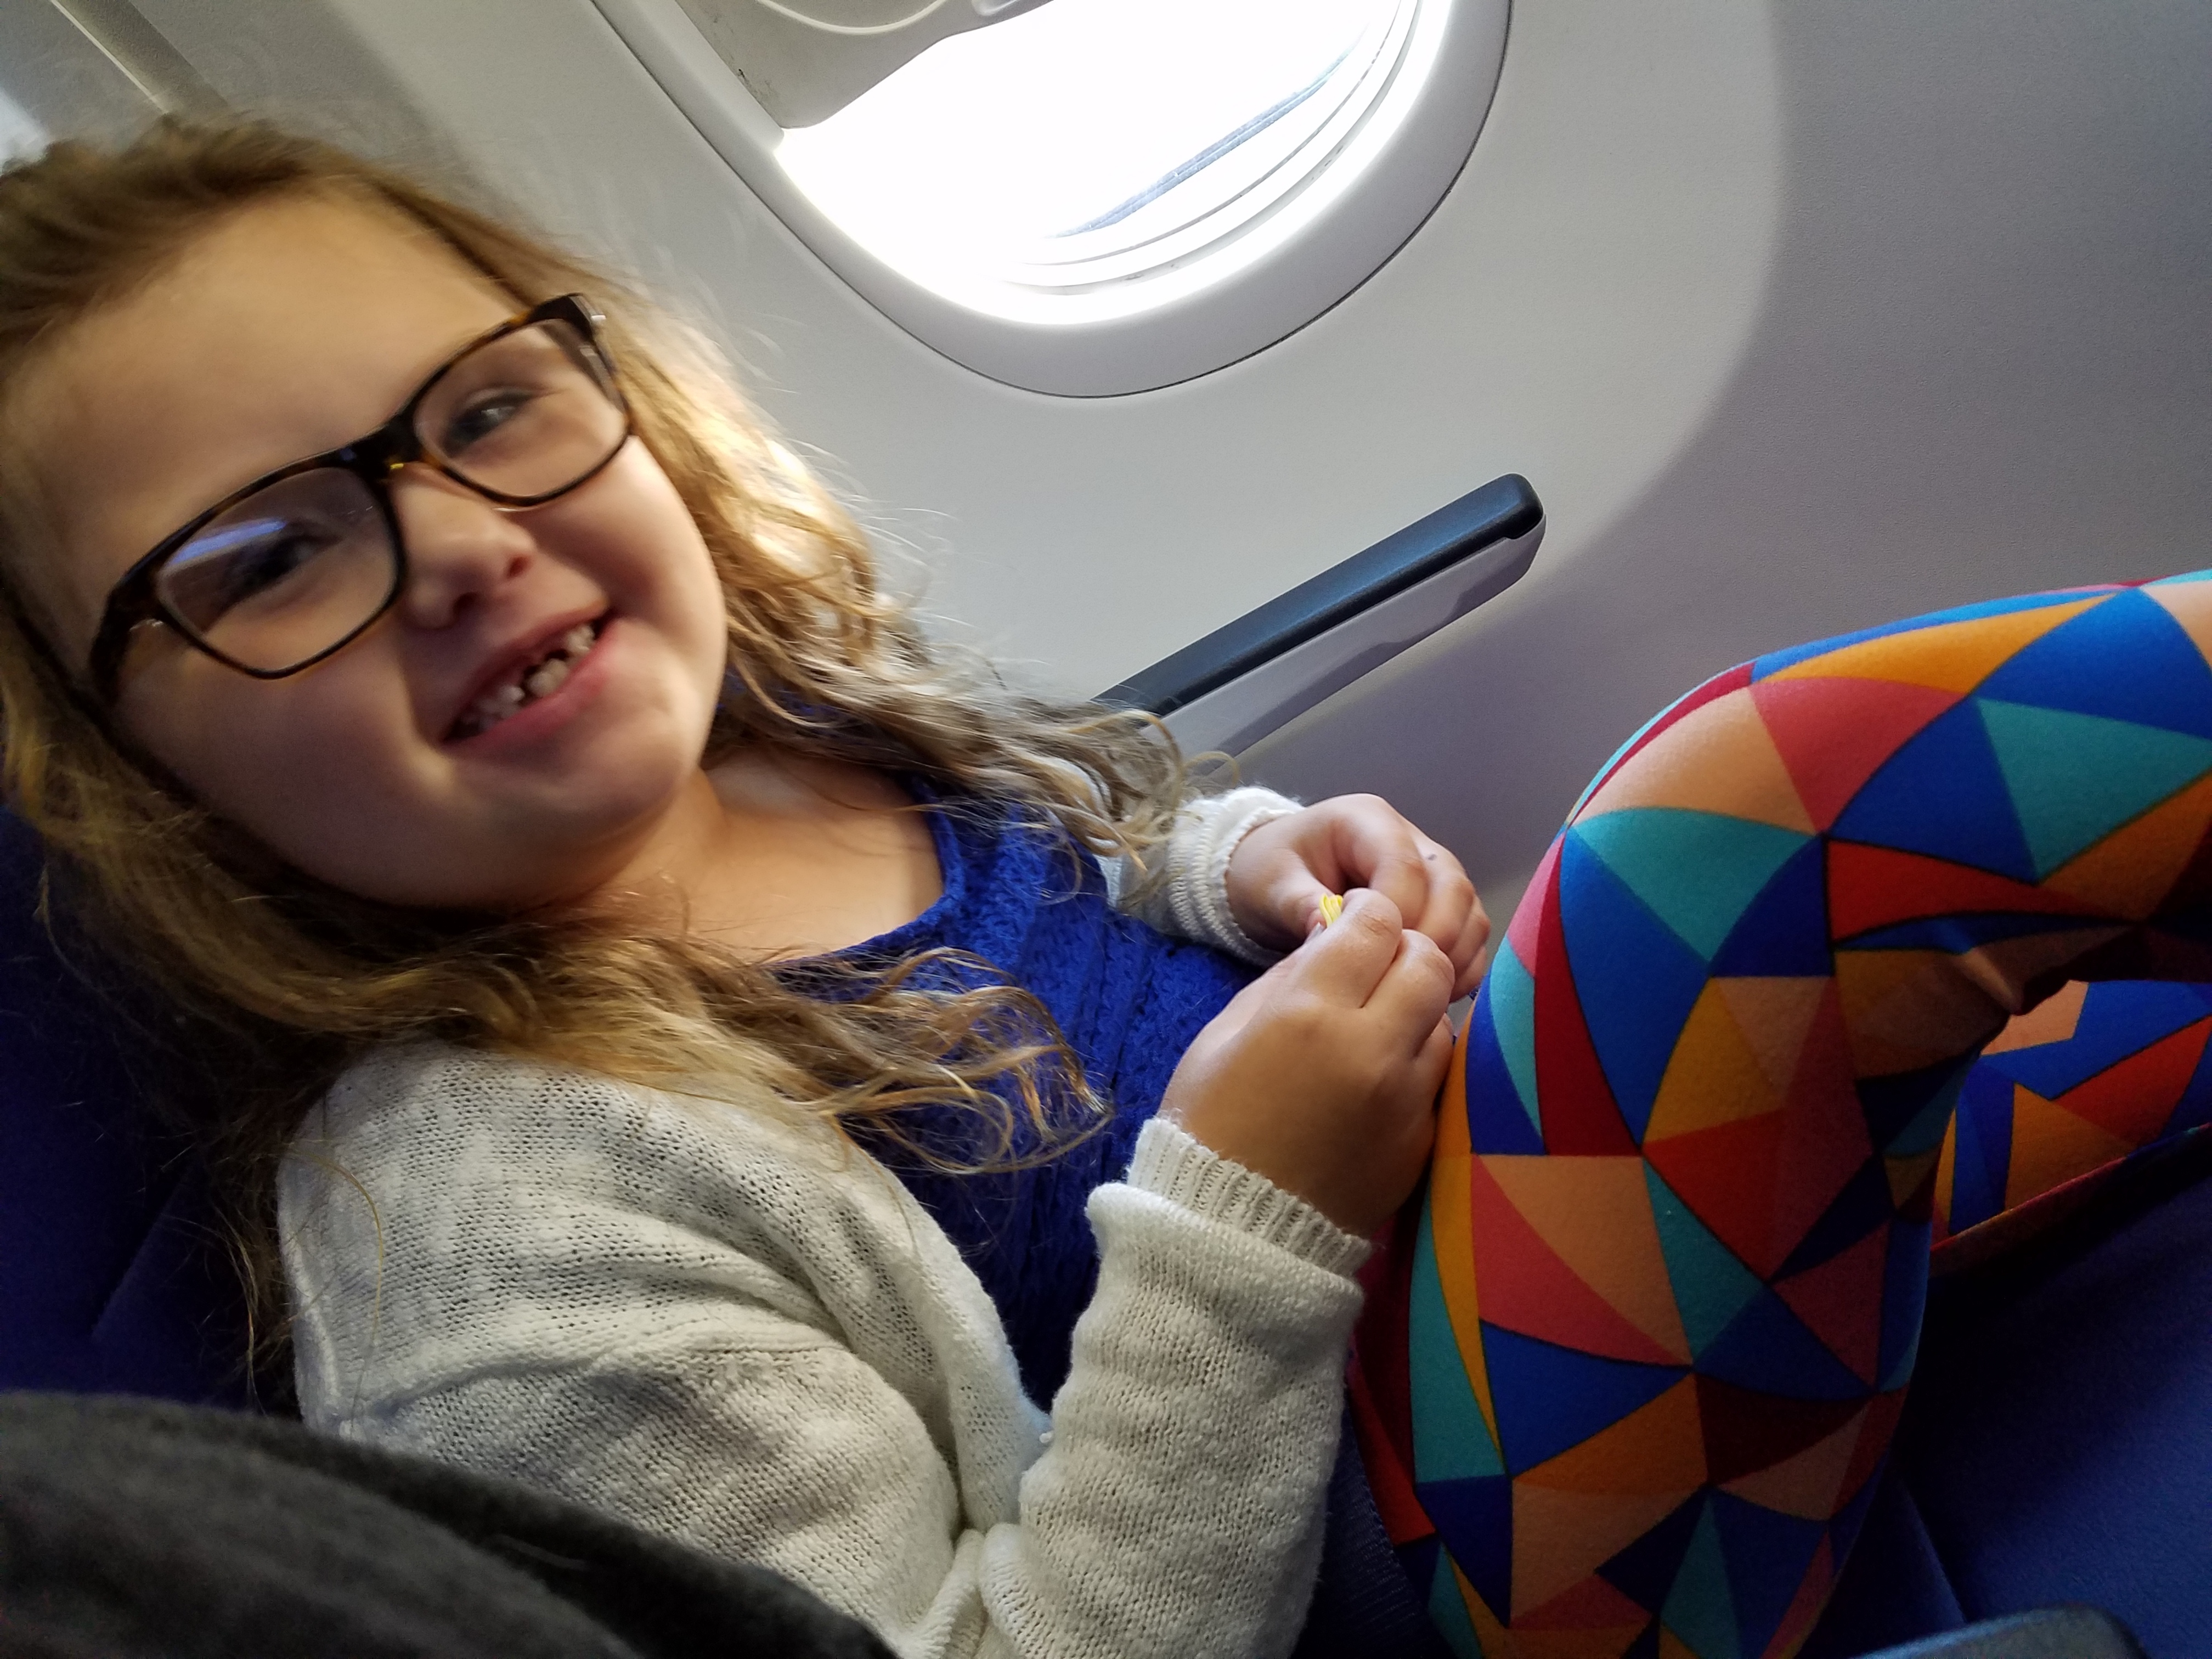 krystle's daughter in the window seat of the plane